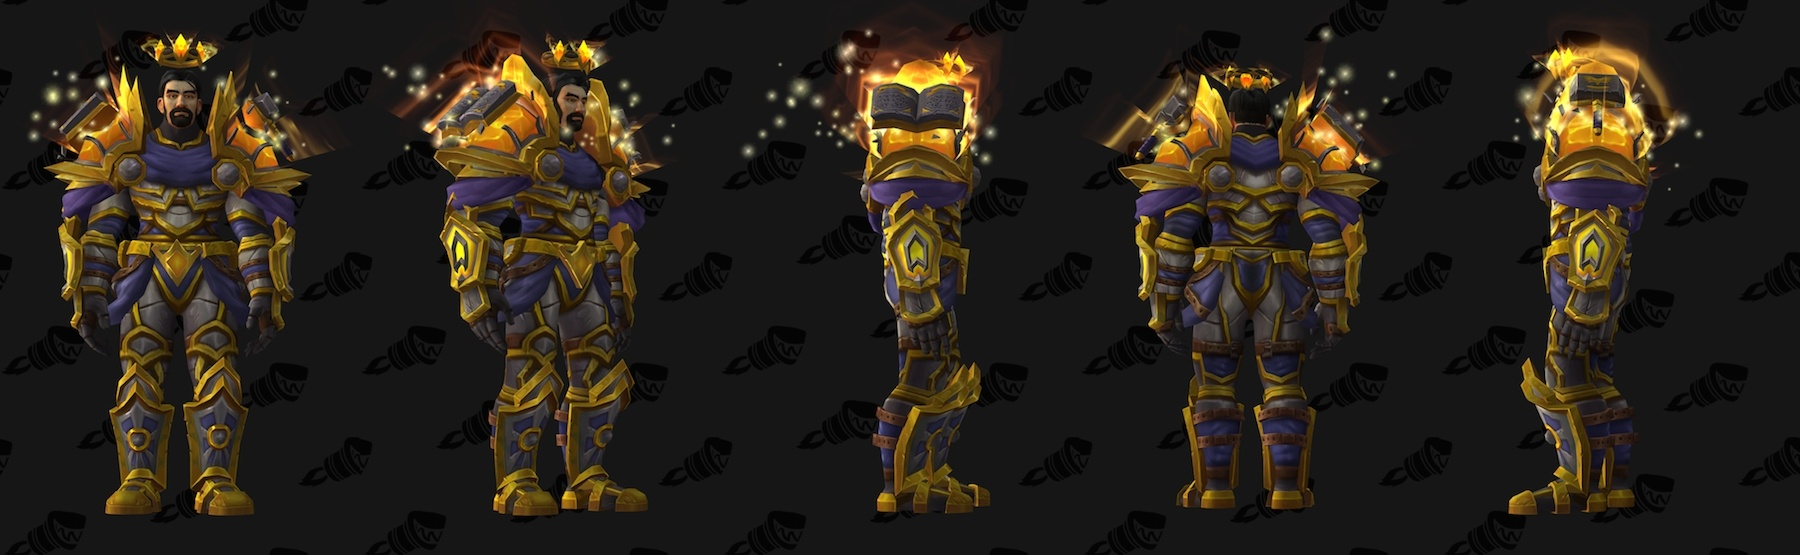 Patch 7.2 - WoW Tier 20 Armor Set Models - Page 17